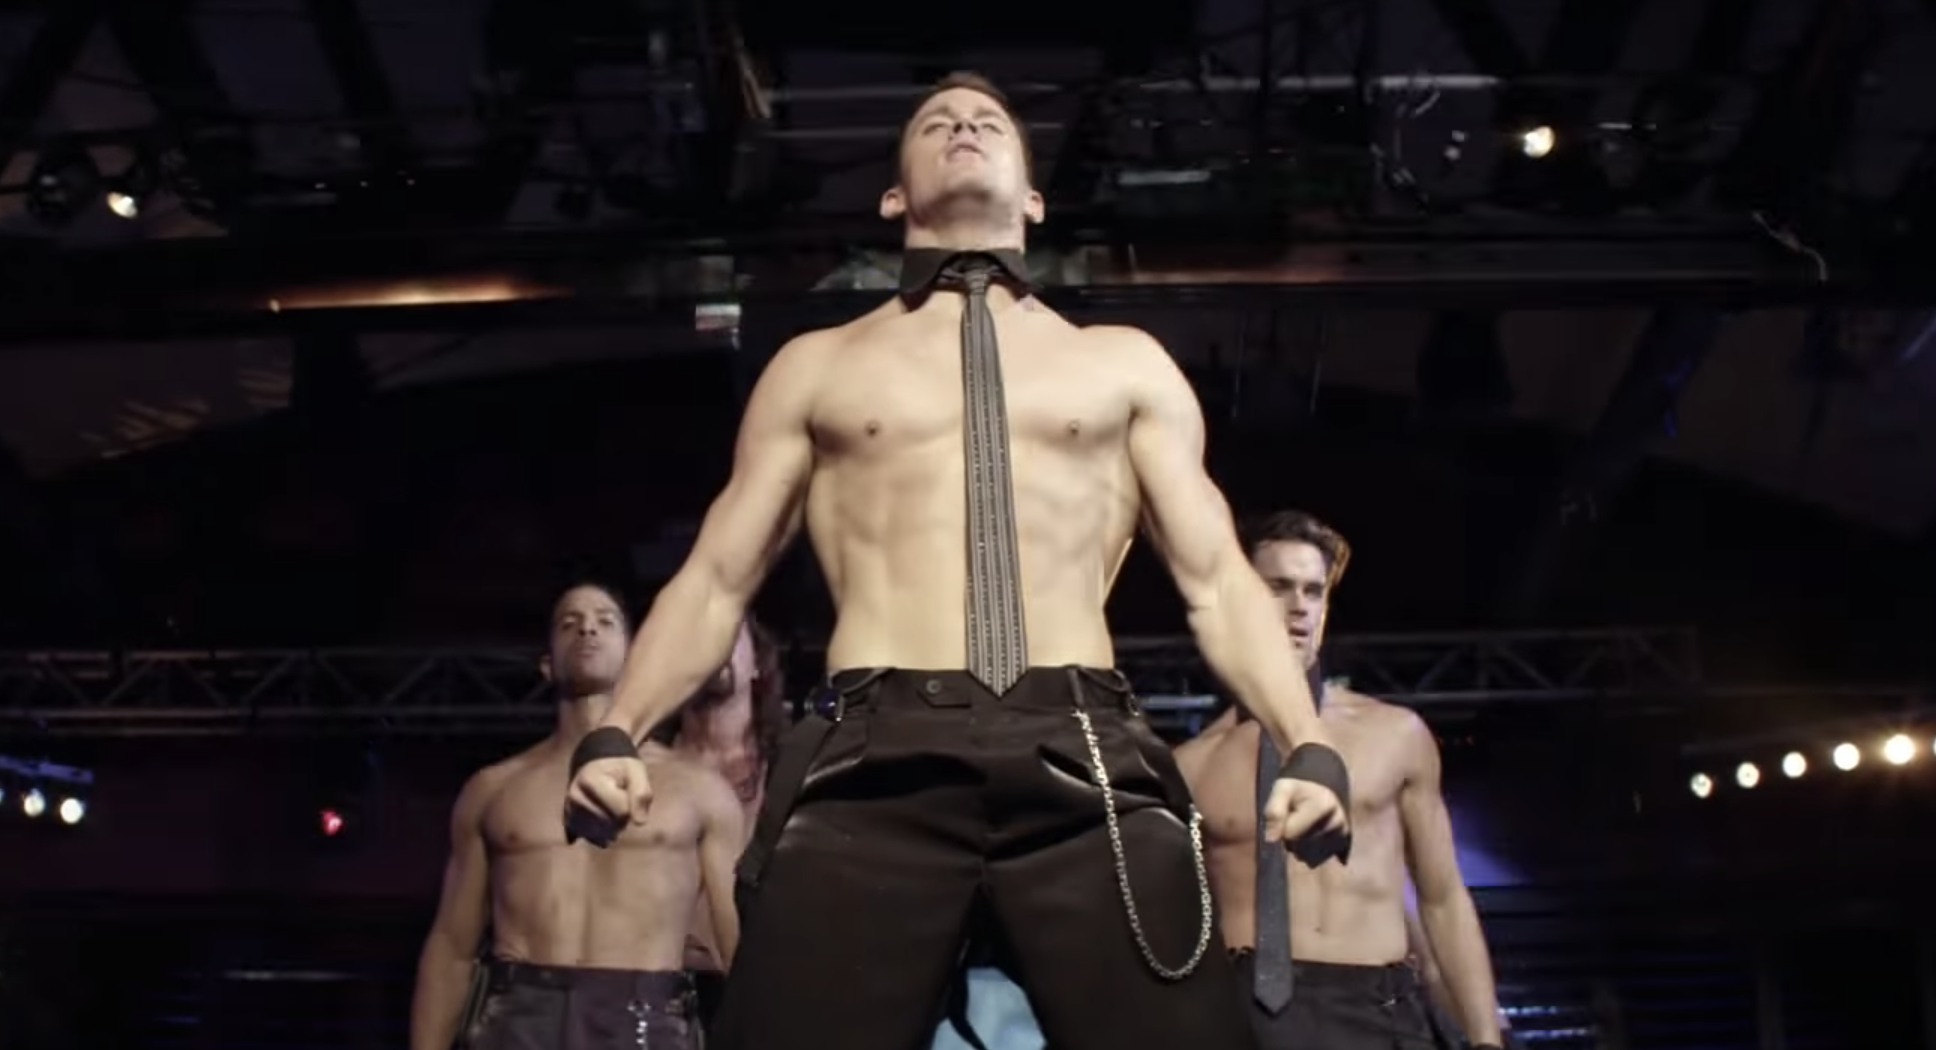 """Channing Tatum stripping in """"Magic Mike"""""""